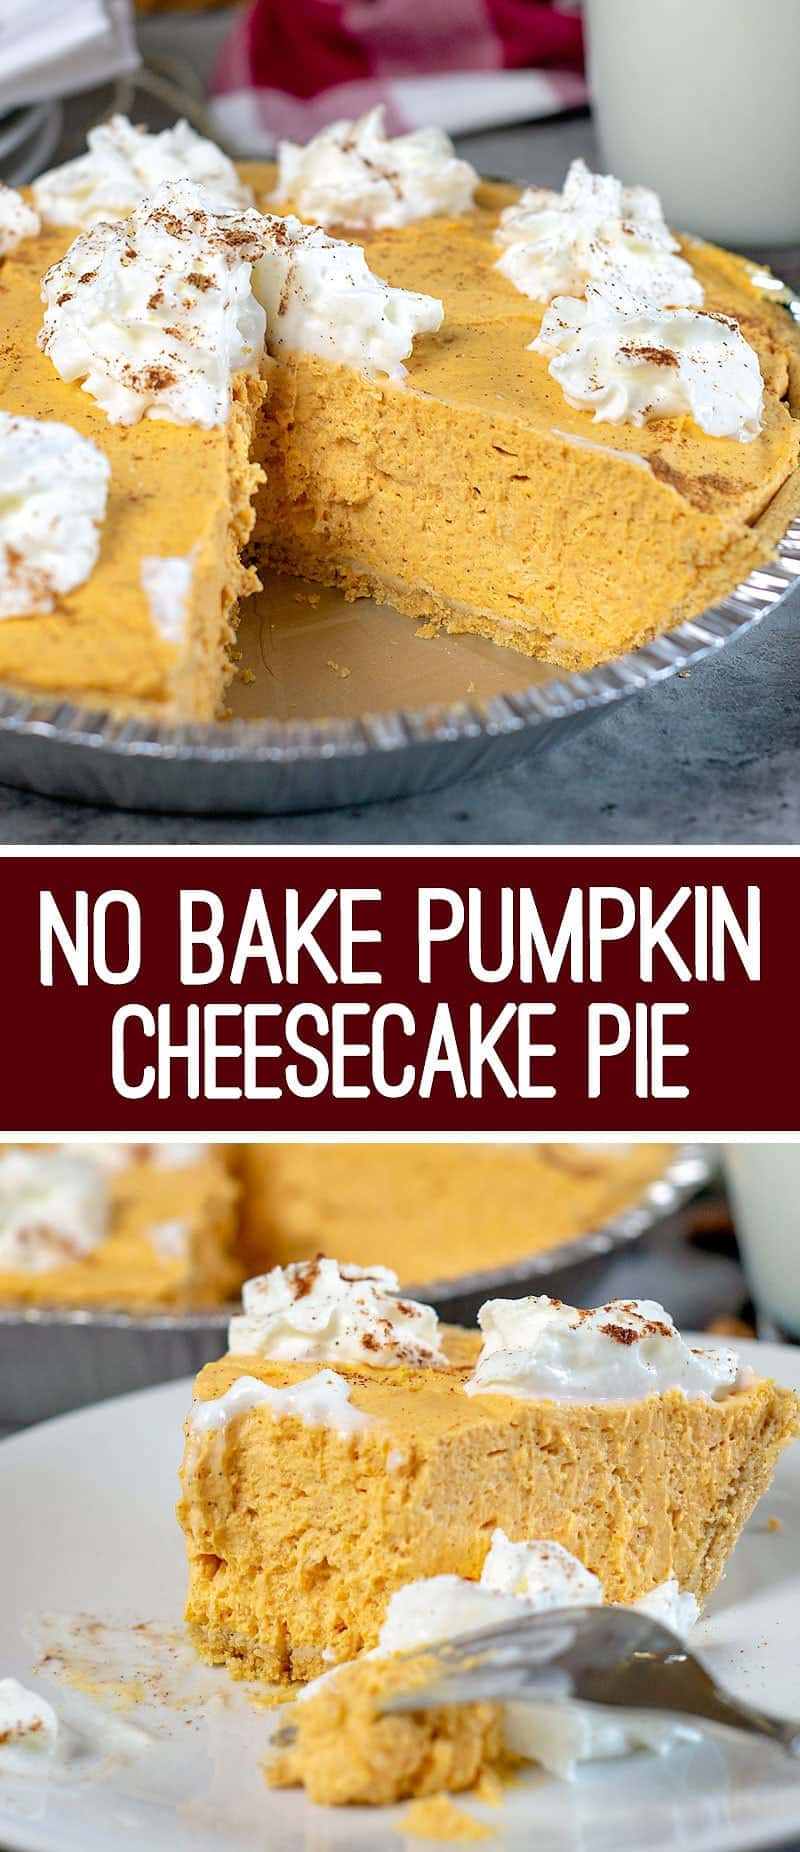 Super easy No Bake Pumpkin Cheesecake Dessert recipe: This Pumpkin Cheesecake Pie is light, fluffy, full of pumpkin flavor and oh-so-good! It's a perfect no-bake fall dessert.